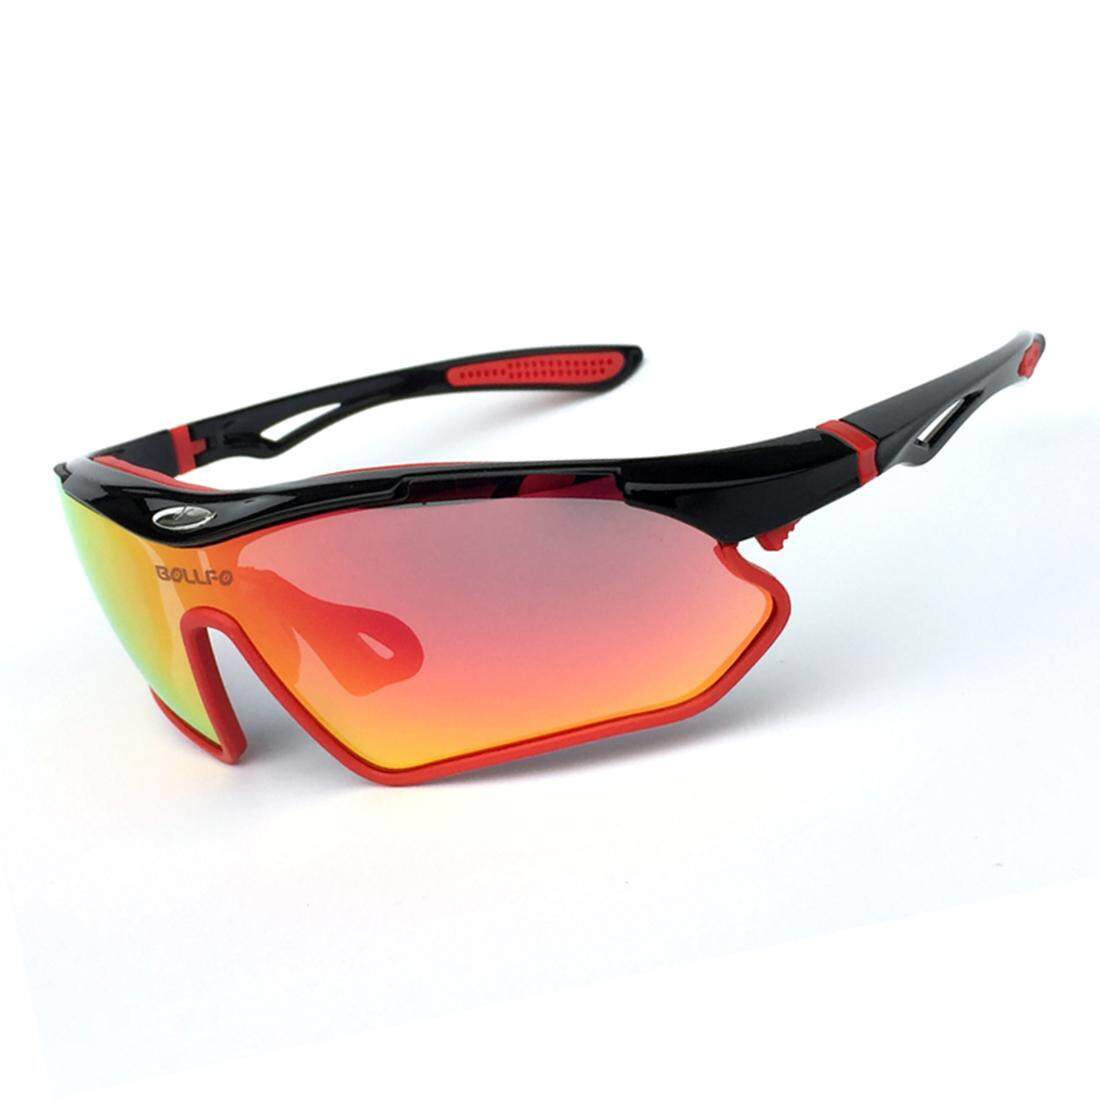 7d760f7ba 360WISH TR90 Ultraviolet-proof Outdoor Sports Activities Spectacles Bike  Riding Eyewear Sunglasses Protective Goggles -